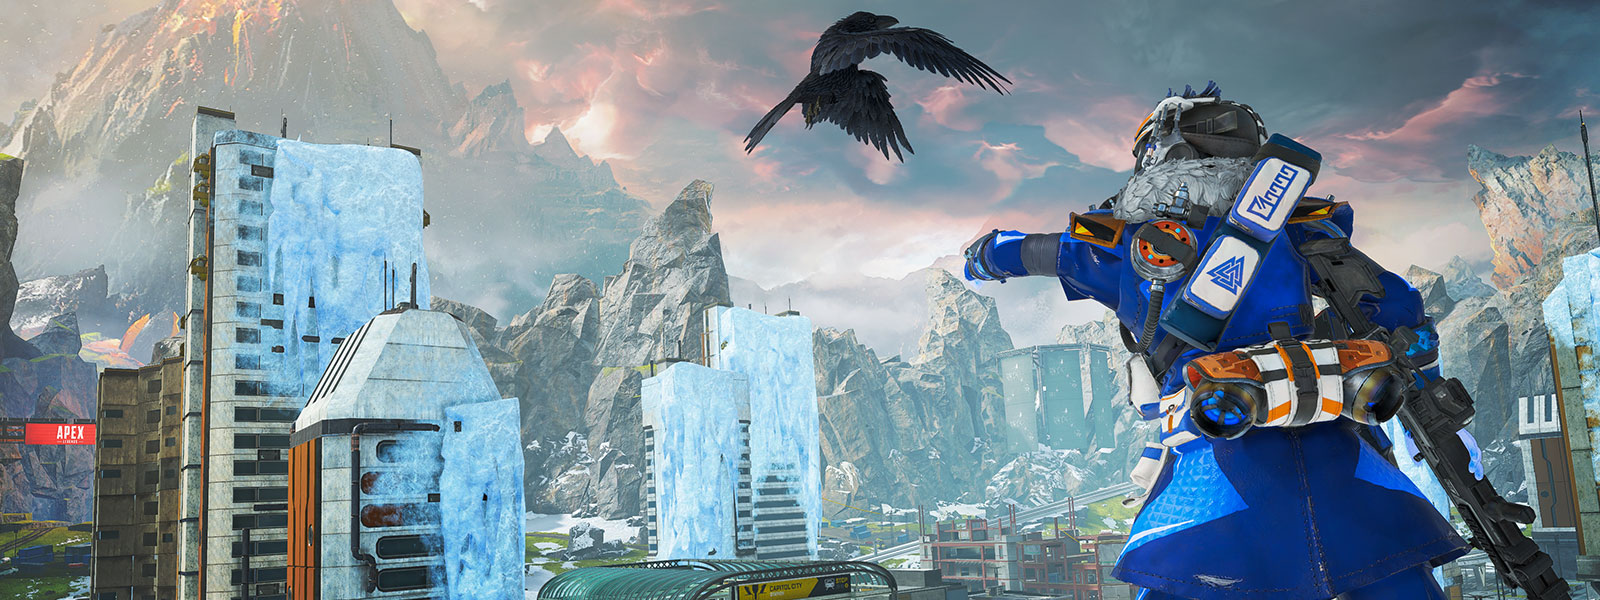 Character stands above a frozen city and extends his arm as a perch for a flying raven, volcano and cliffs in background